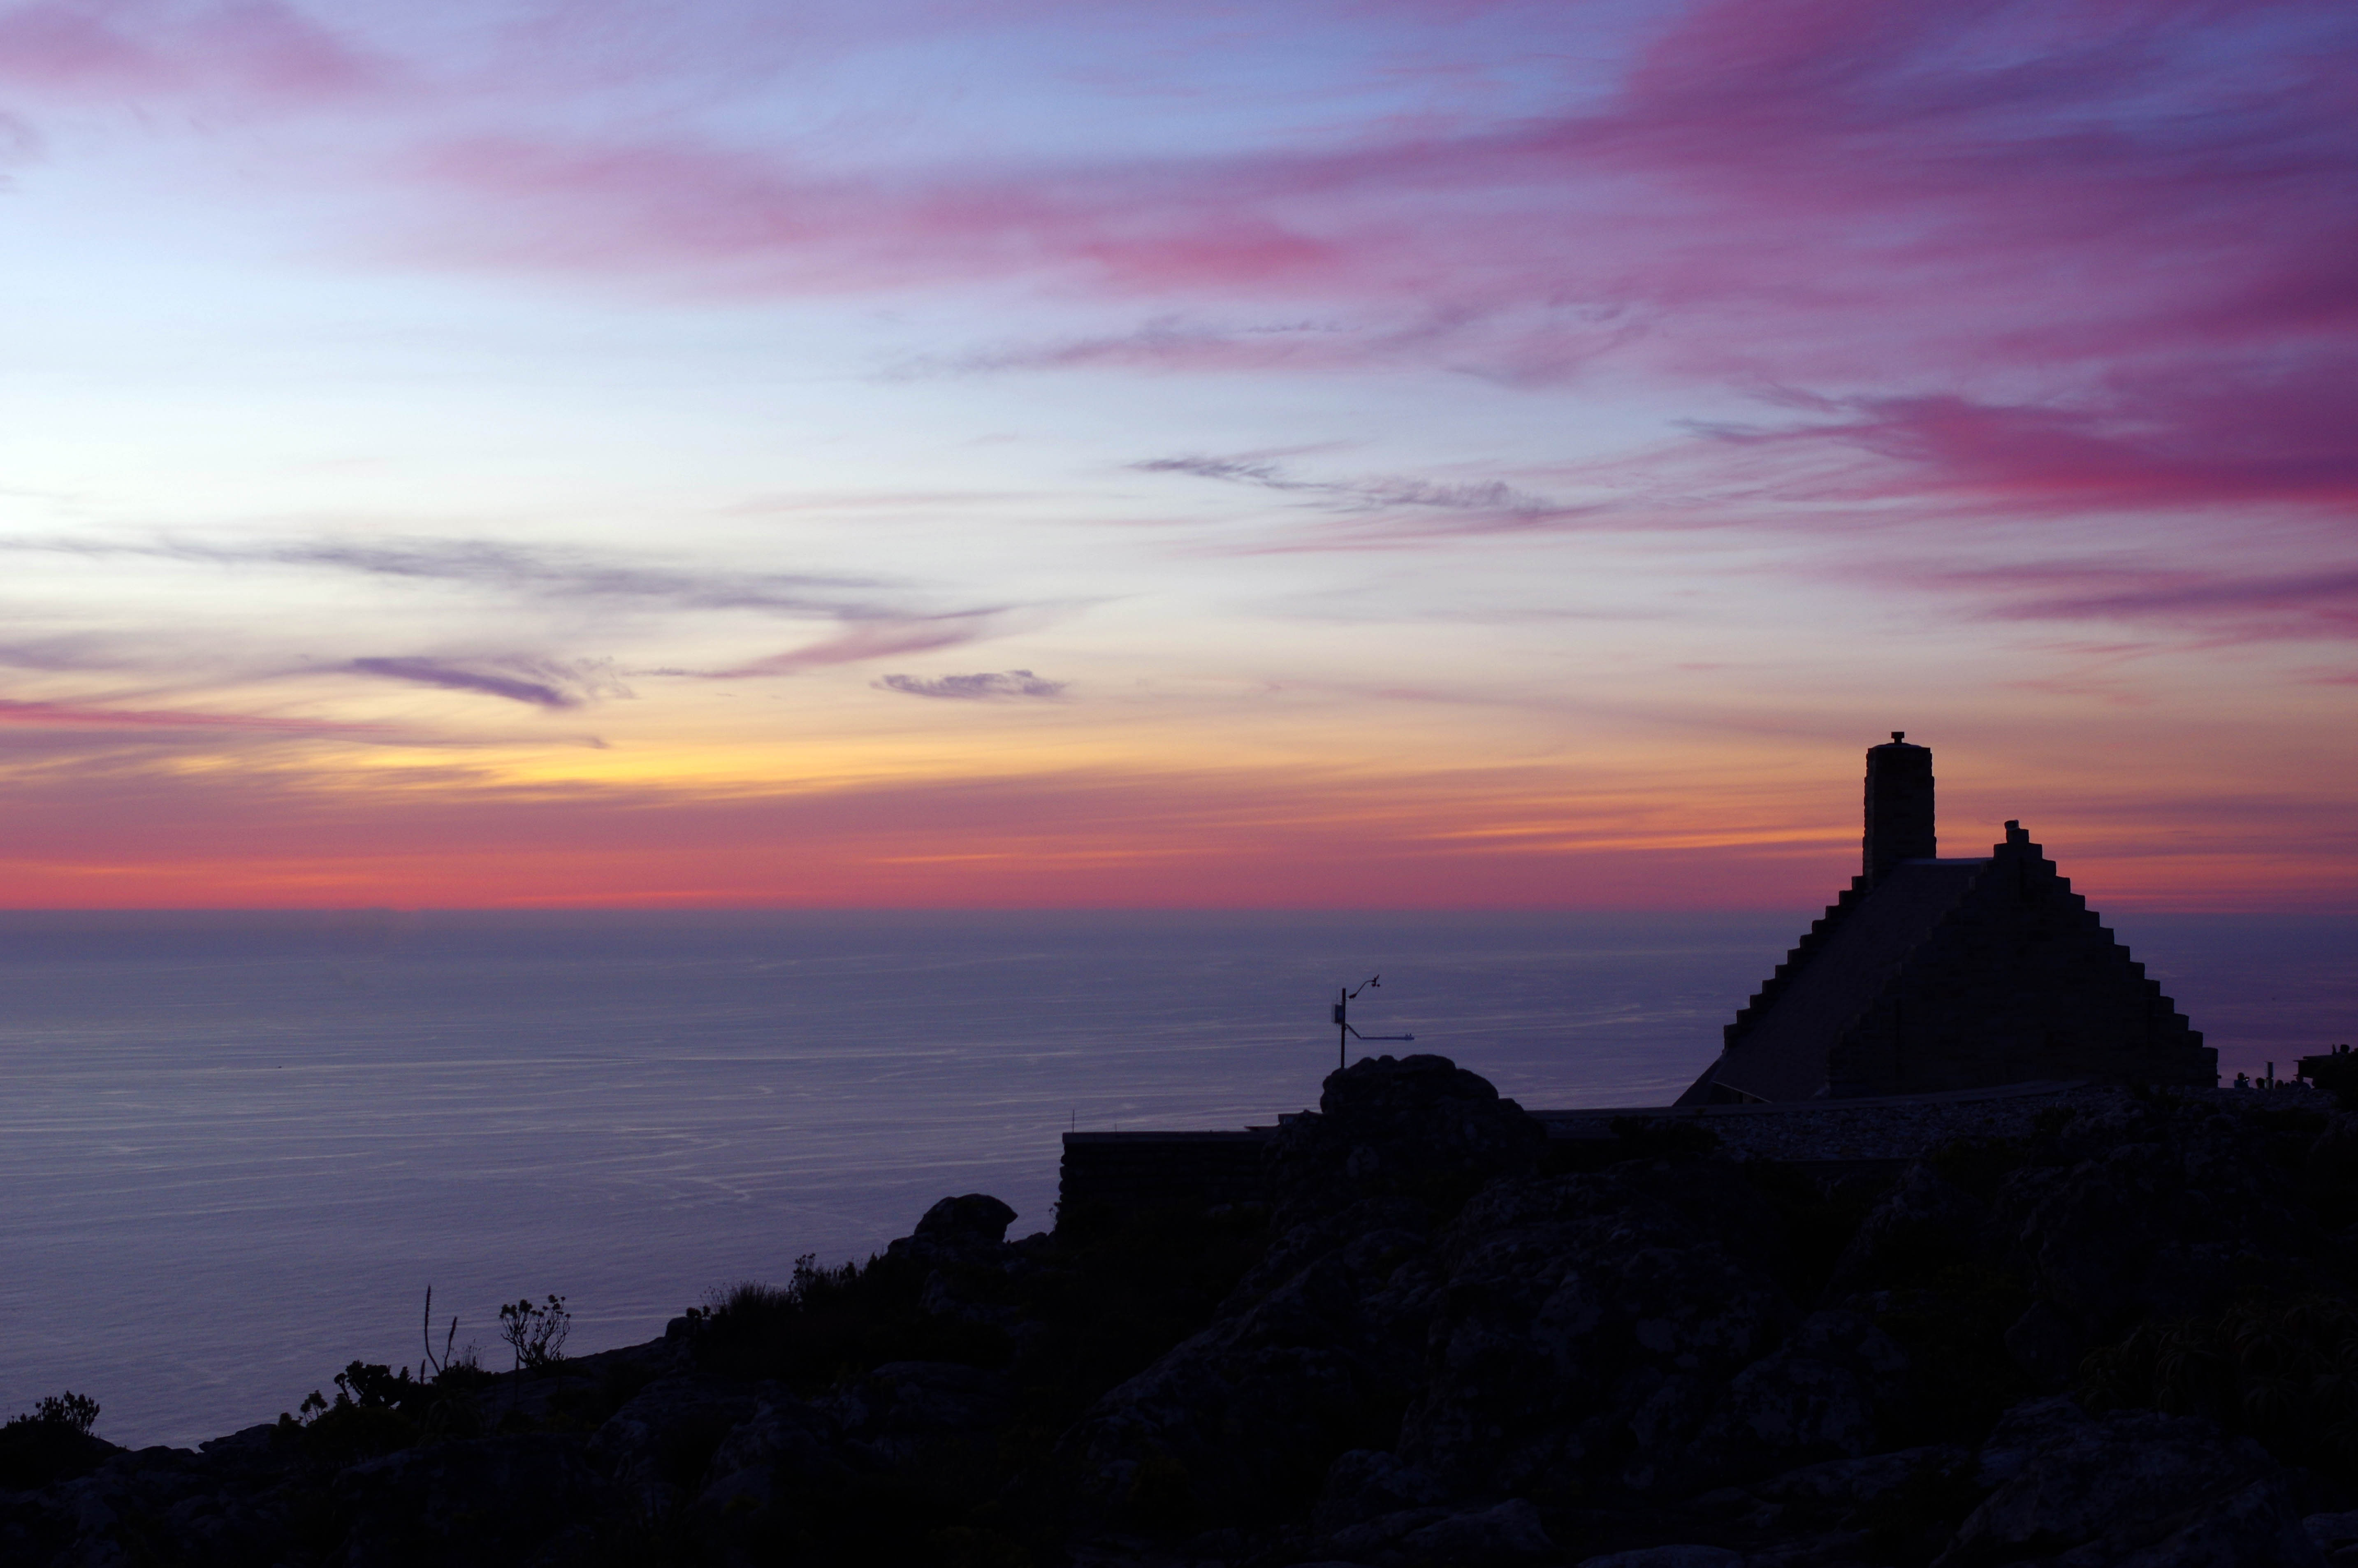 171122_CT_Table mountain56